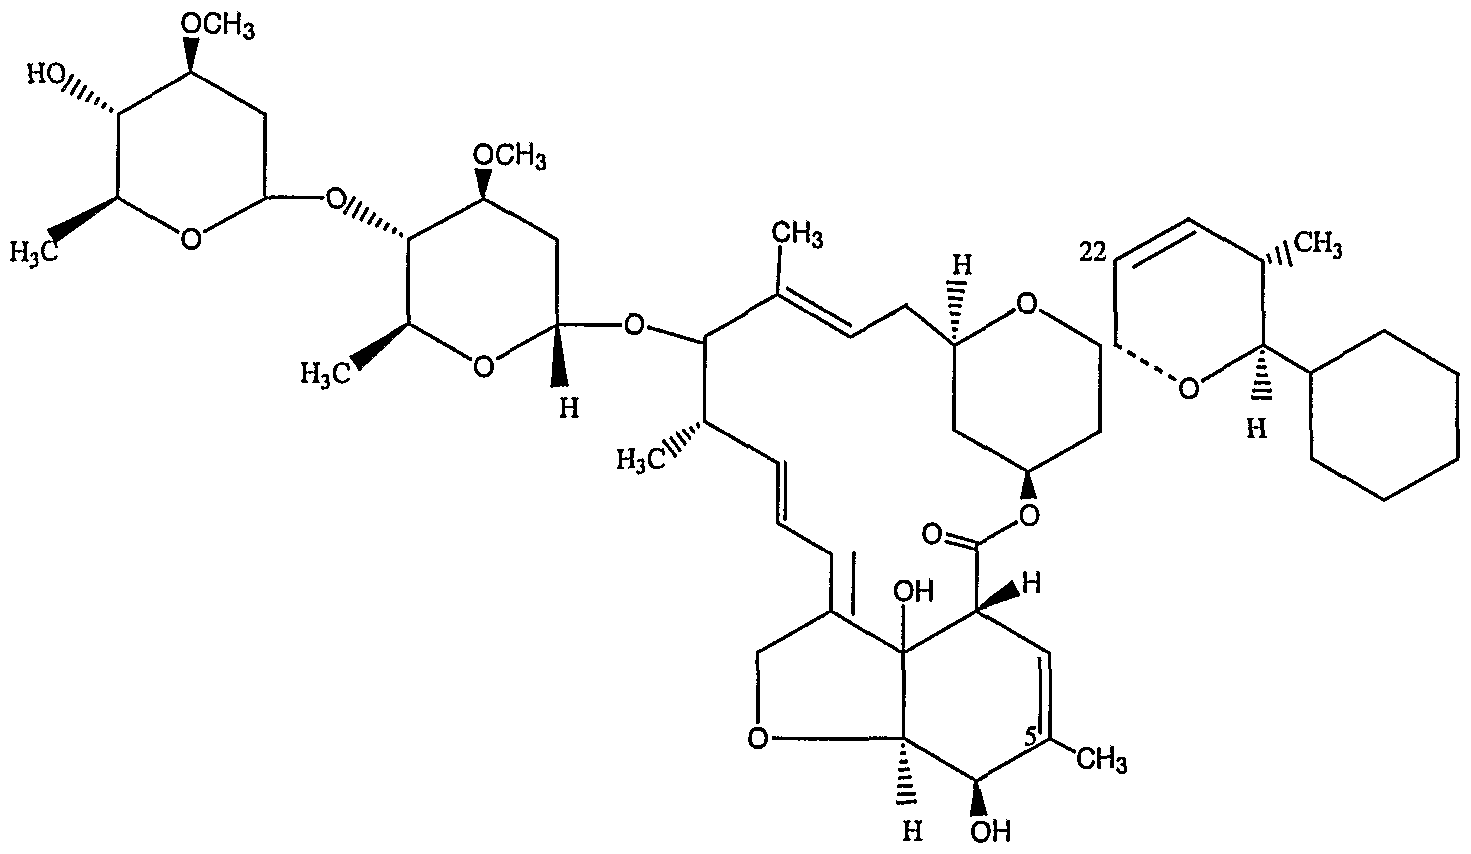 hight resolution of so4 2 lewis structure with formal charges